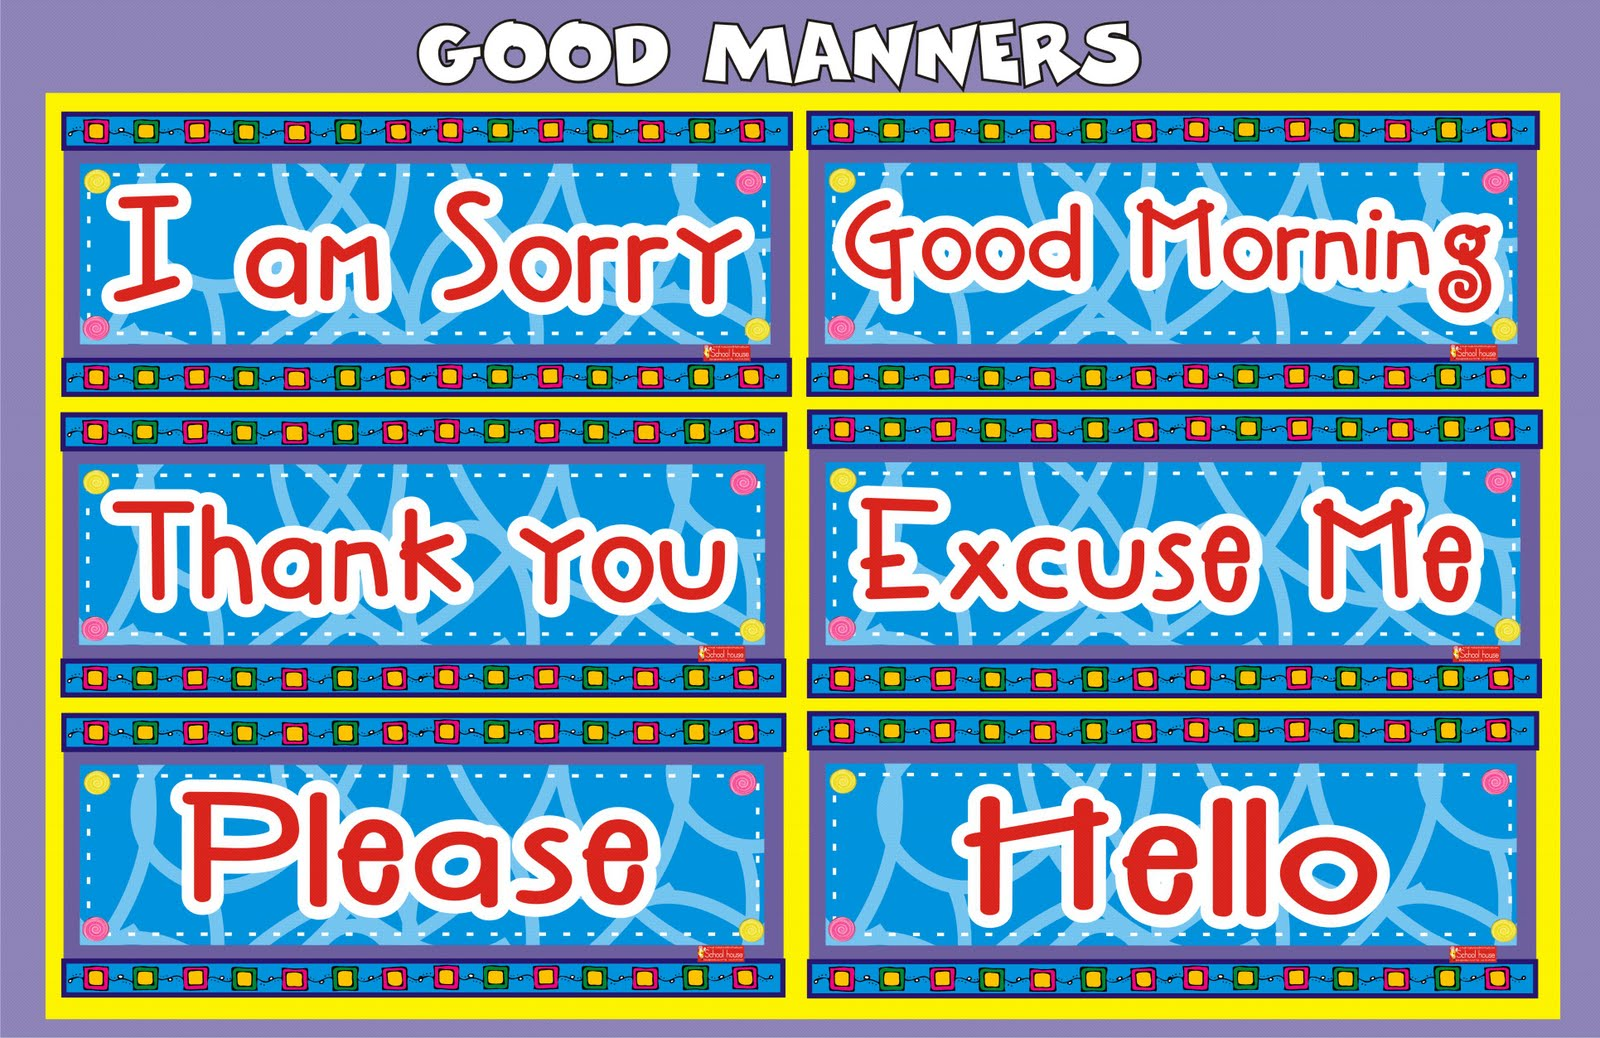 essay good manners kids 10 lines on good manners short essay class 1 90 words 'myself' essay for kids ( point wise ) 16 lines , short essay on good manners for kids.